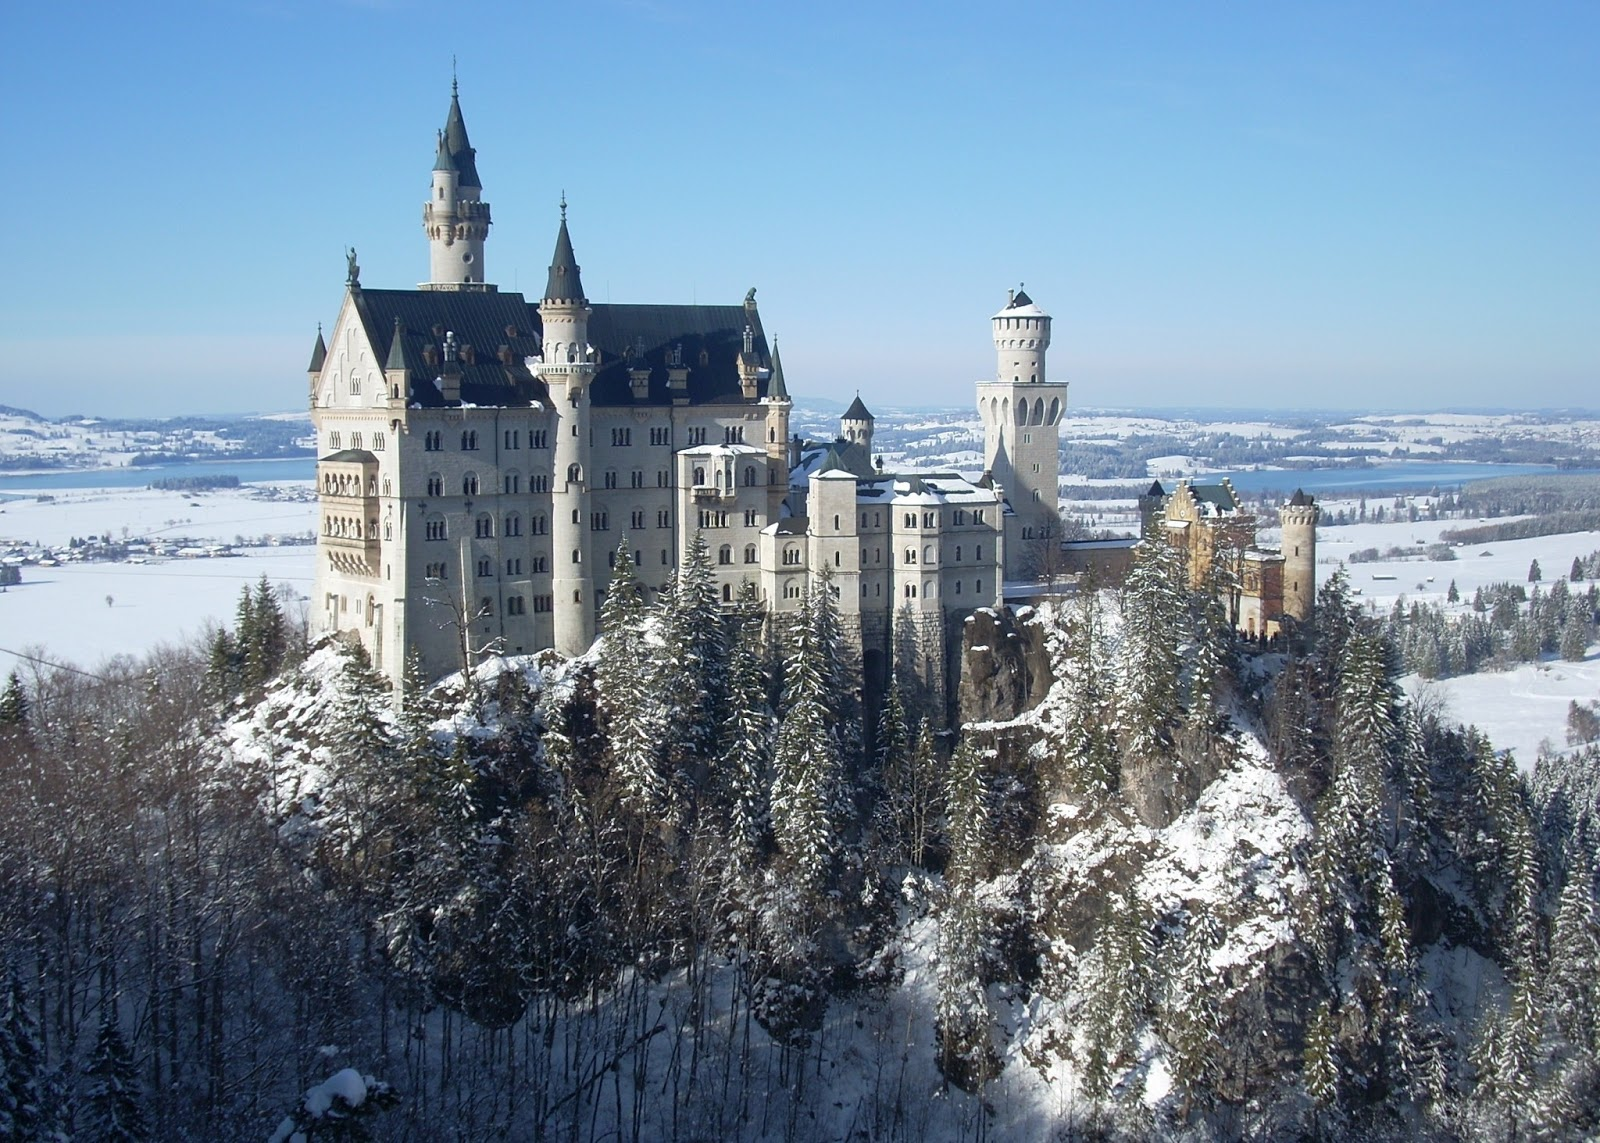 unique wallpaper the great neuschwanstein castle germany wallpaper. Black Bedroom Furniture Sets. Home Design Ideas